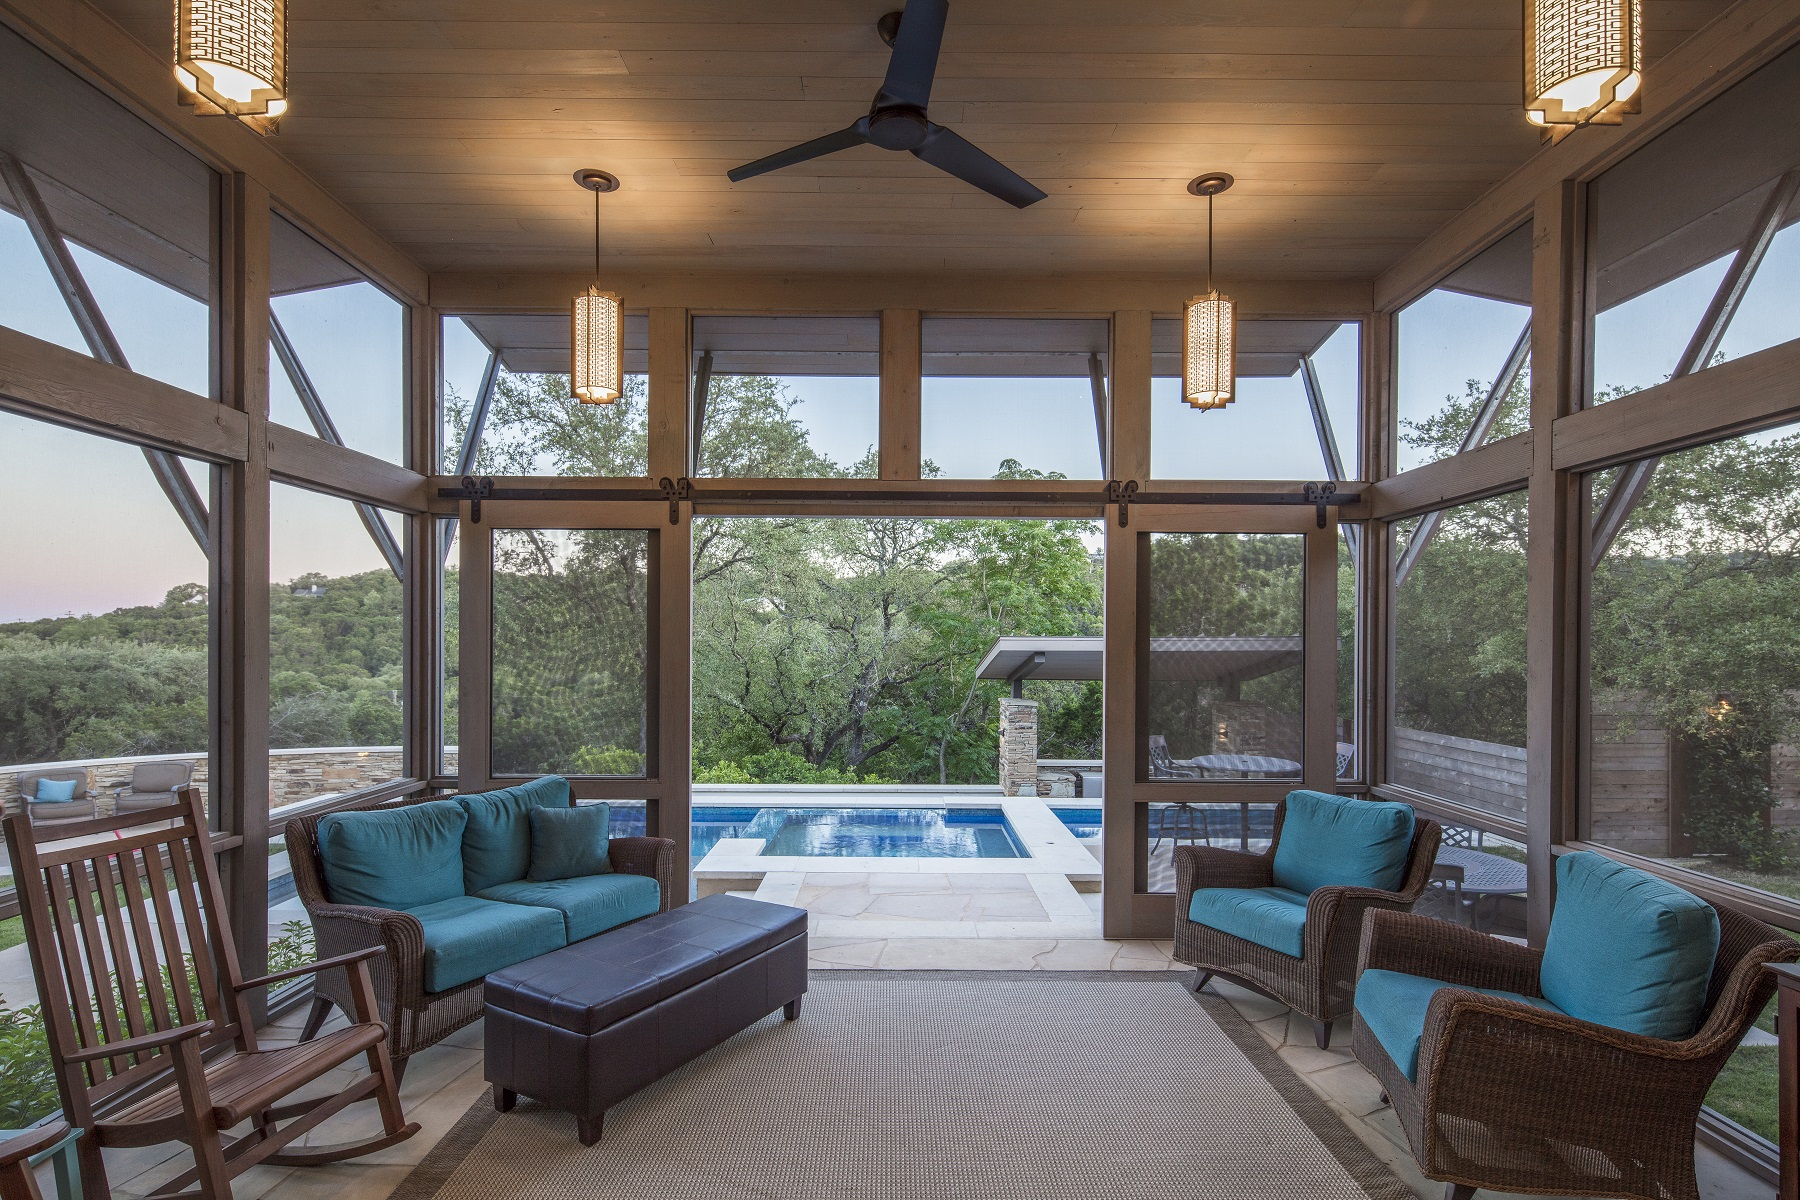 Ledge Screened Porch